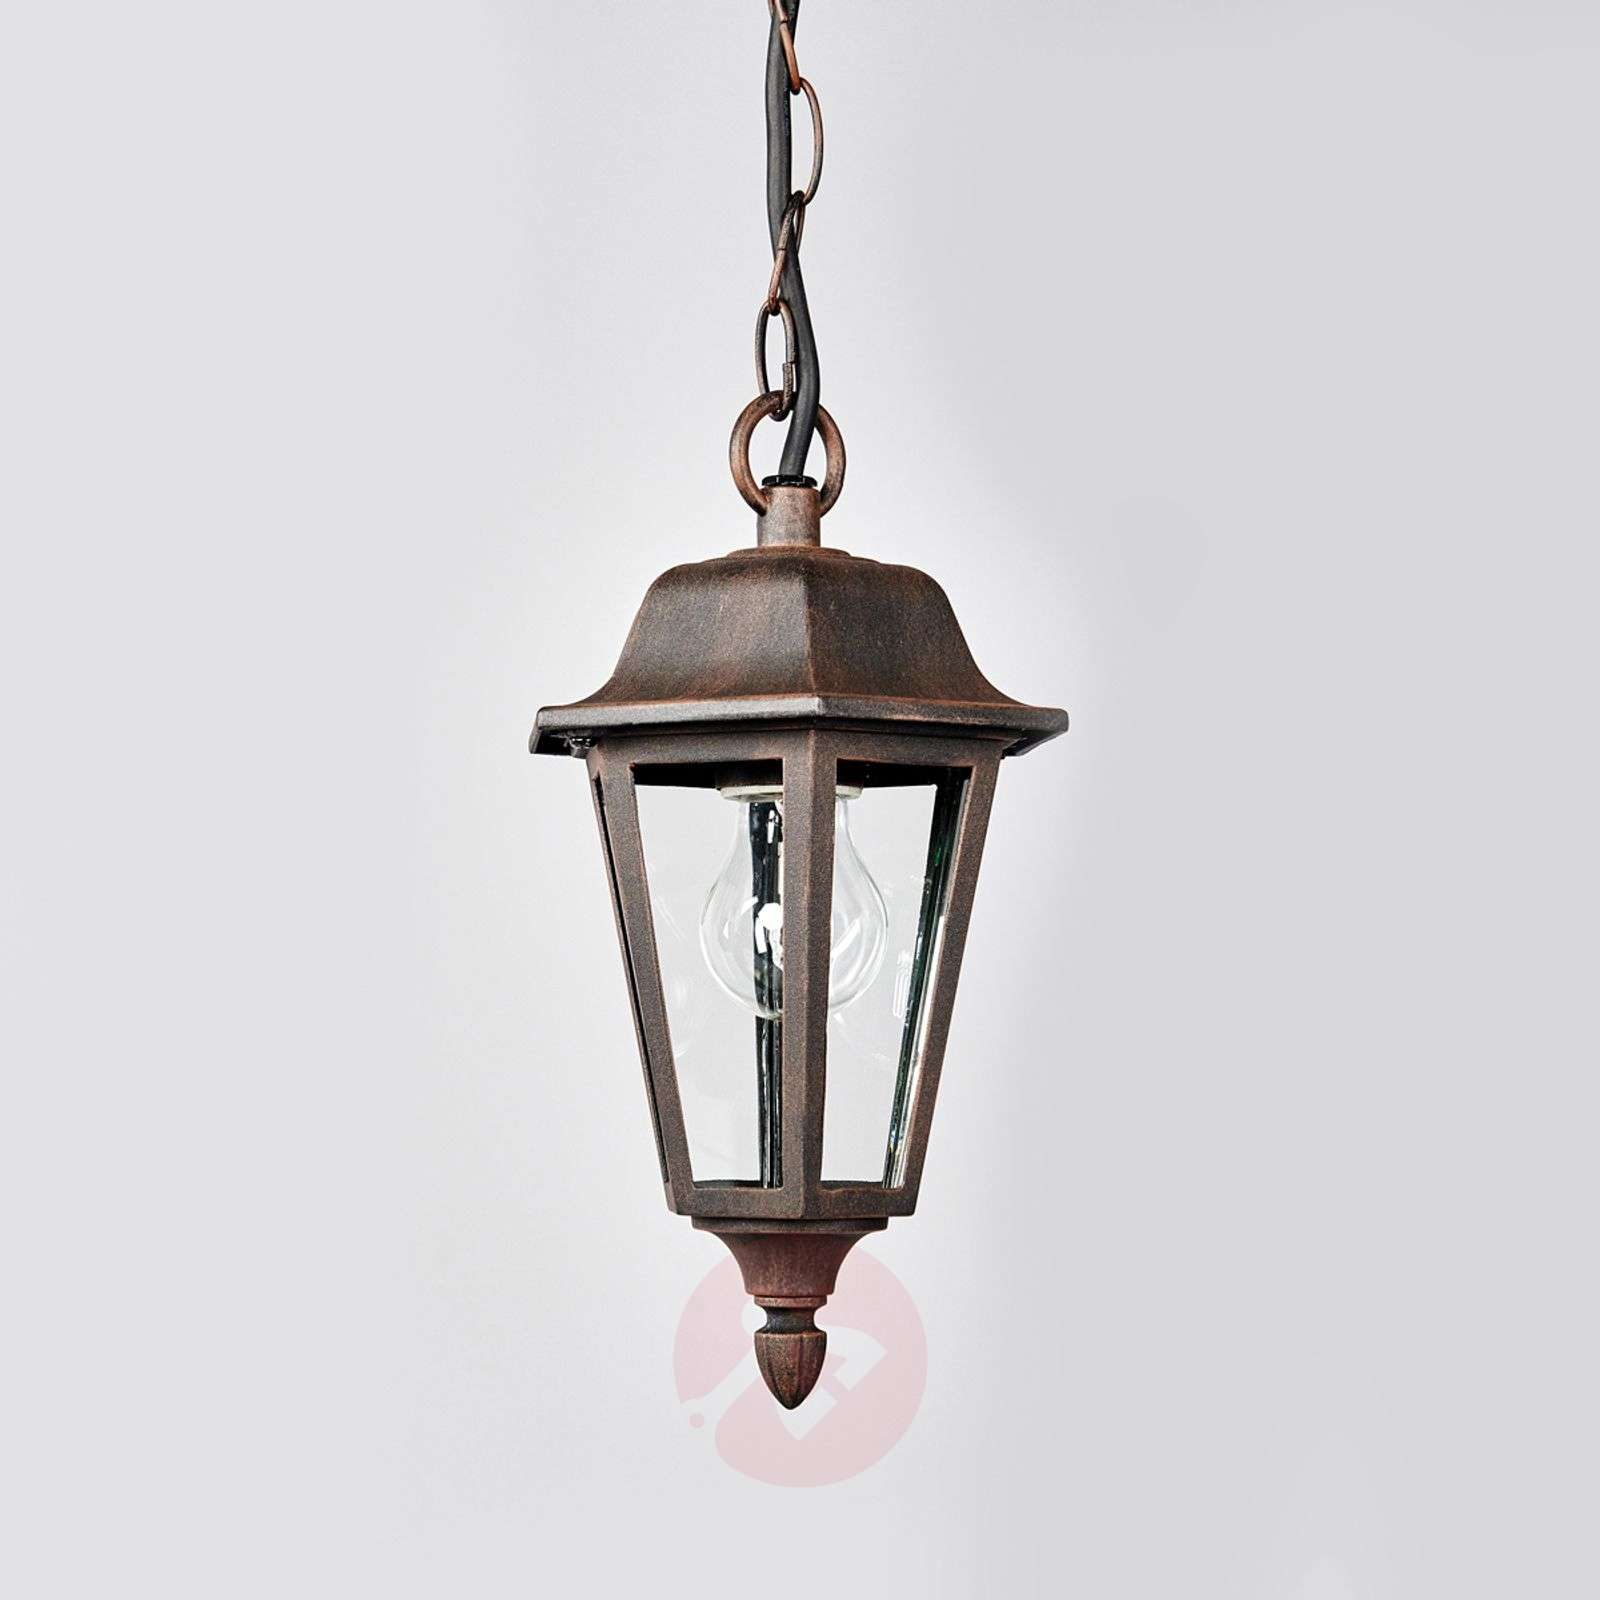 Outdoor hanging light Lamina in lantern form-9630056-01